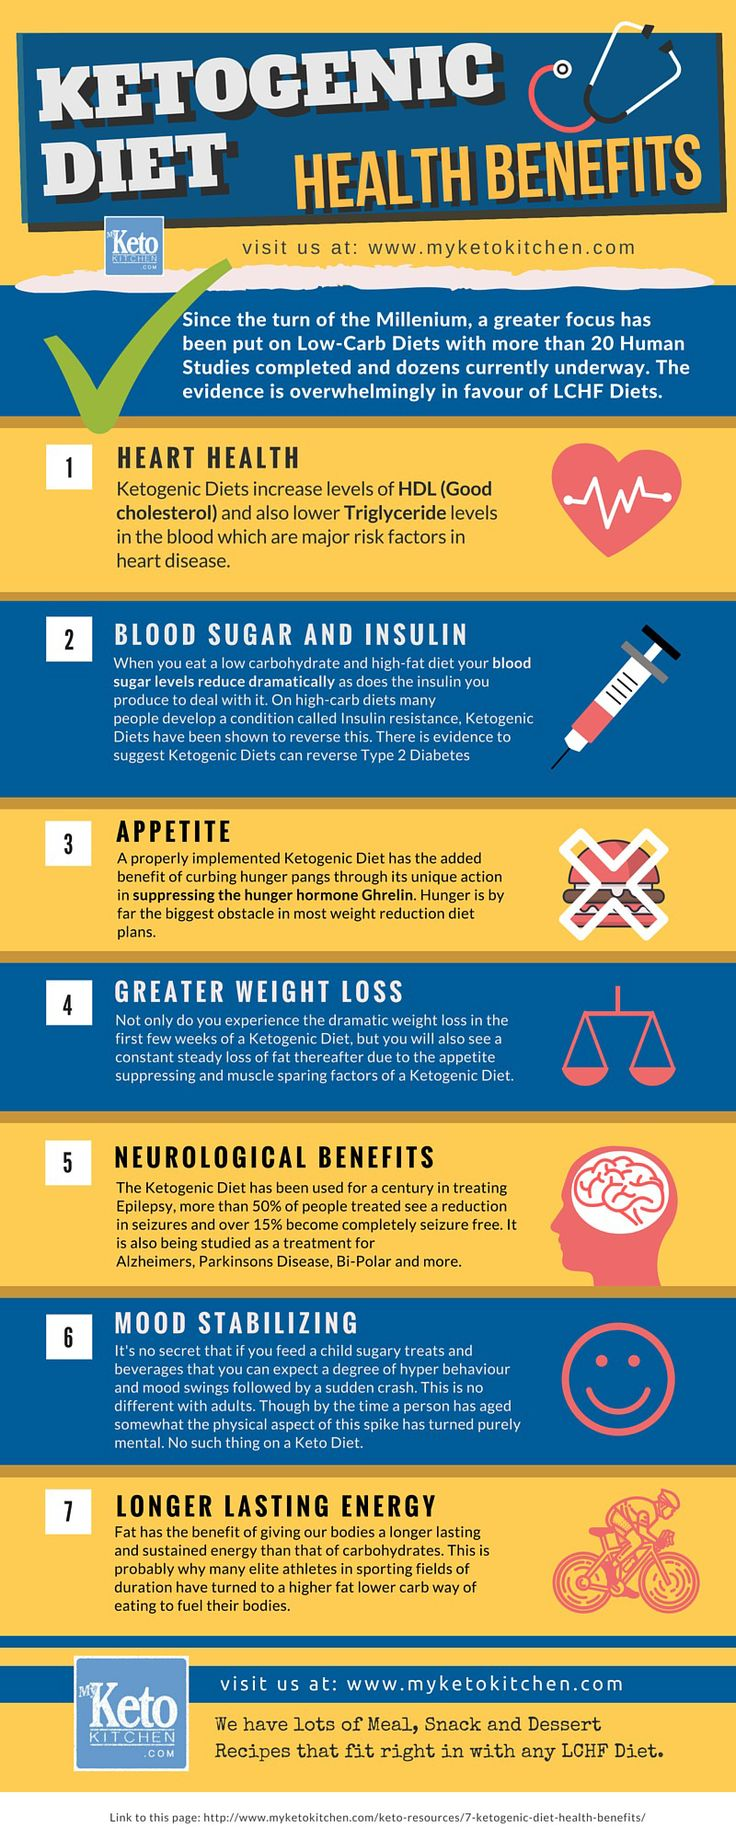 7 Ketogenic Diet Health Benefits [infographic